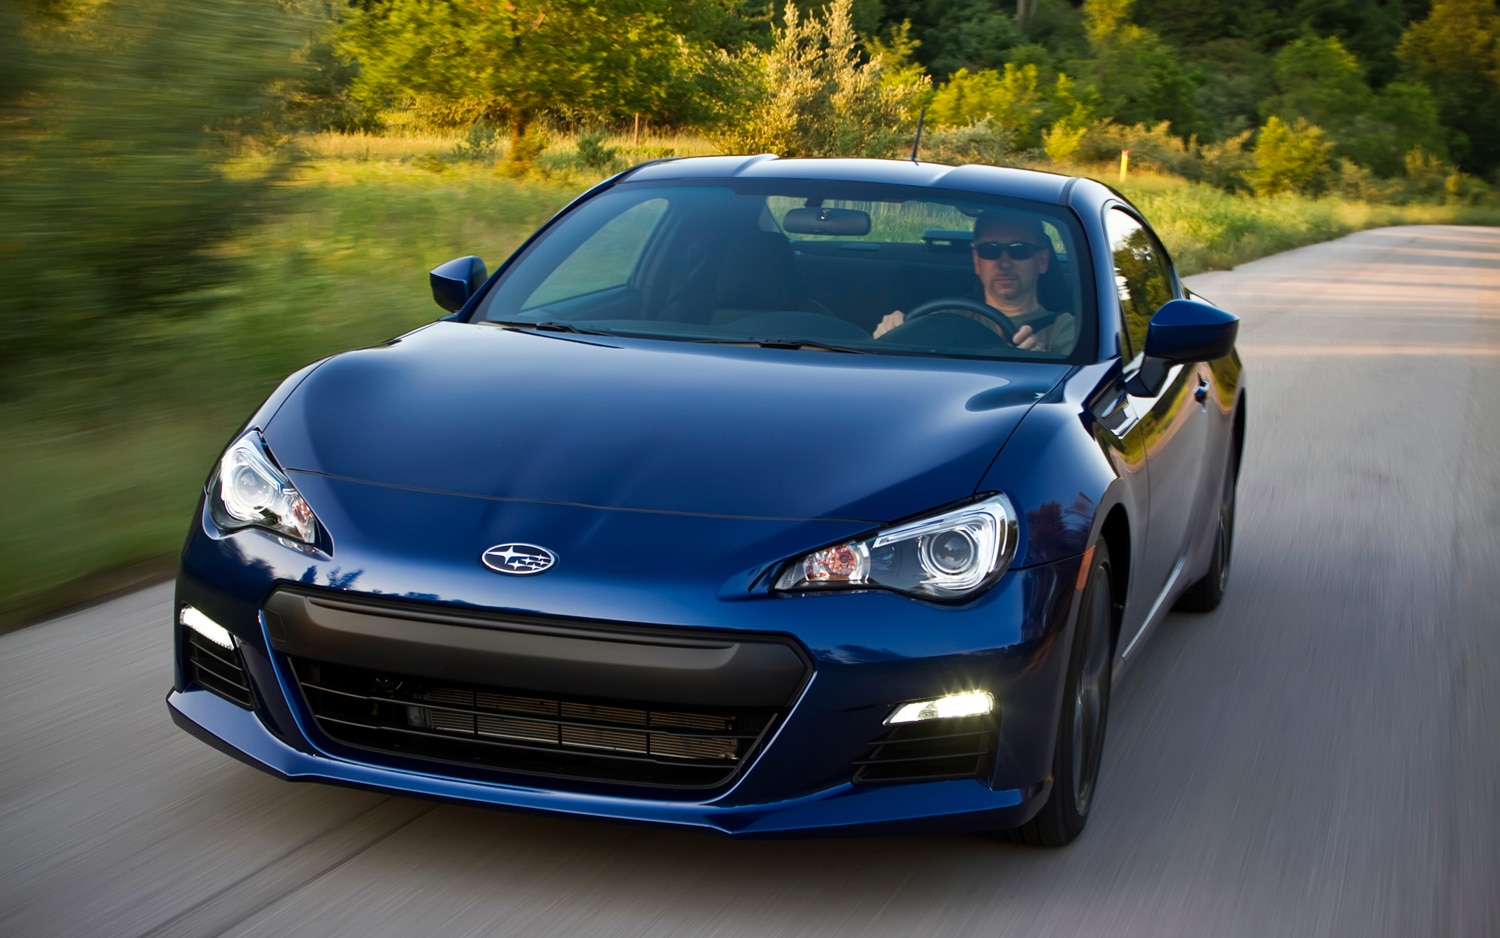 2013 subaru brz choice image - cars wallpaper free